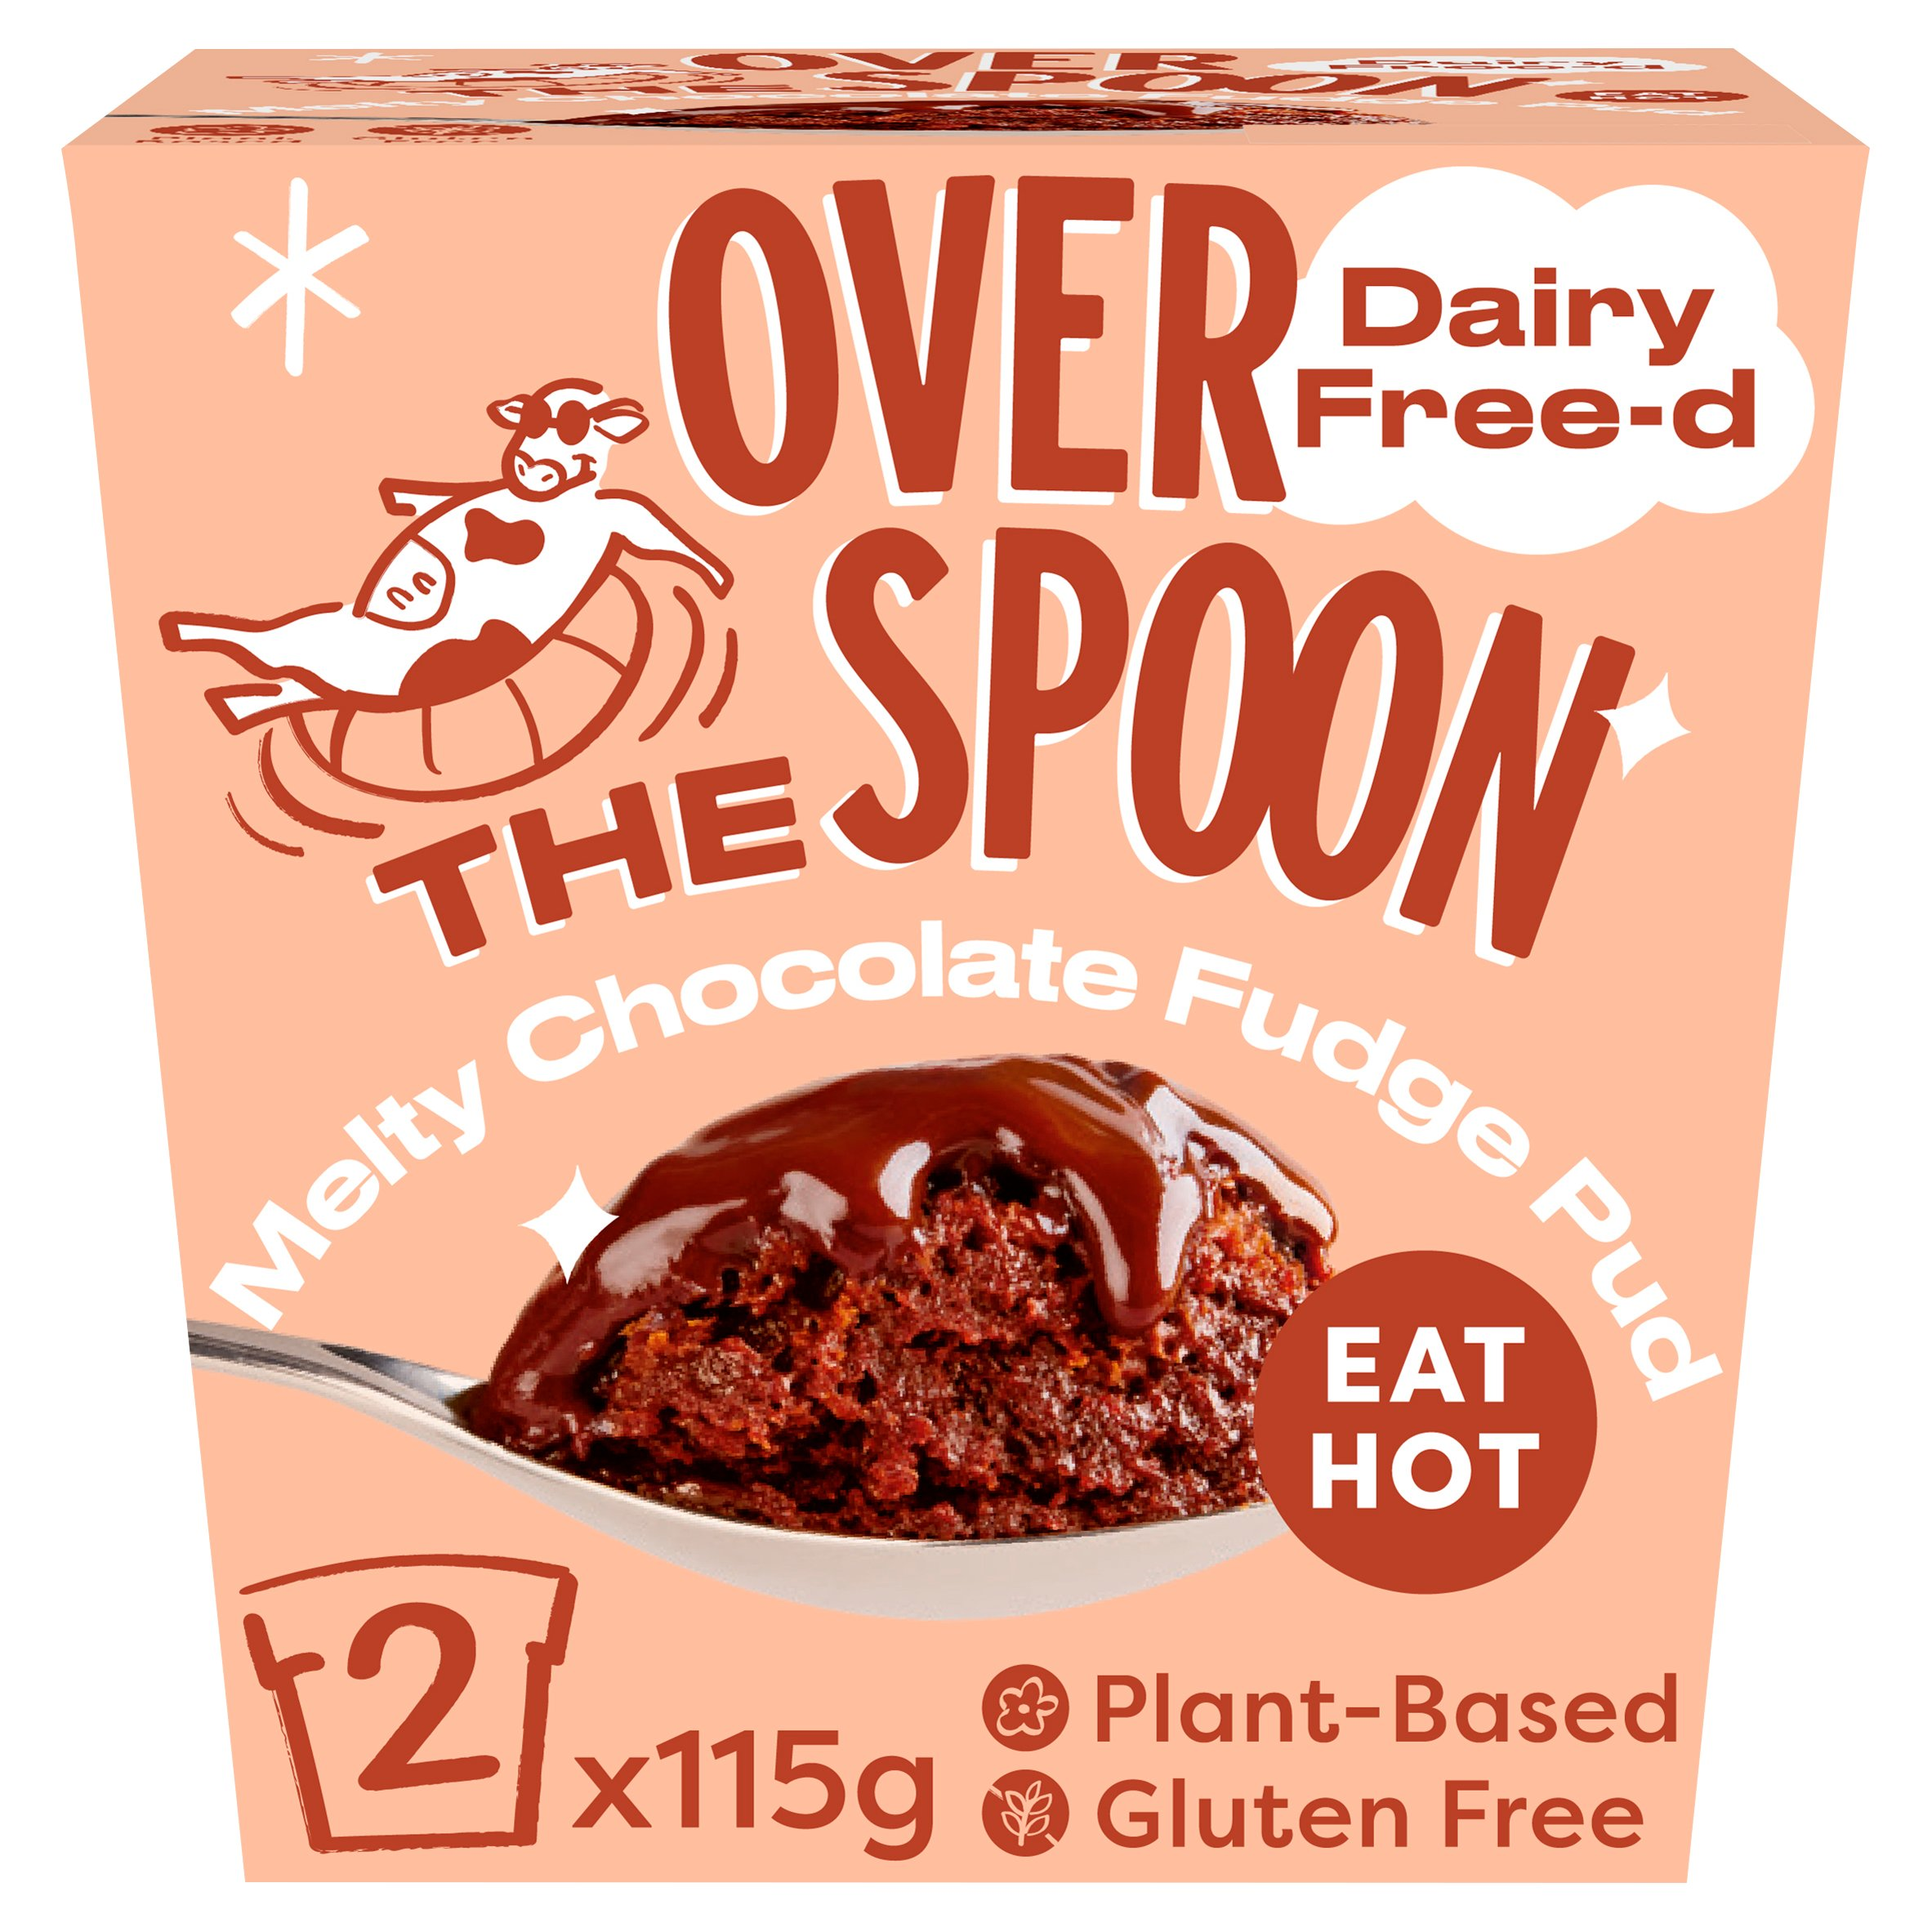 Over The Spoon Chocolate Fudge Pudding 2X115g